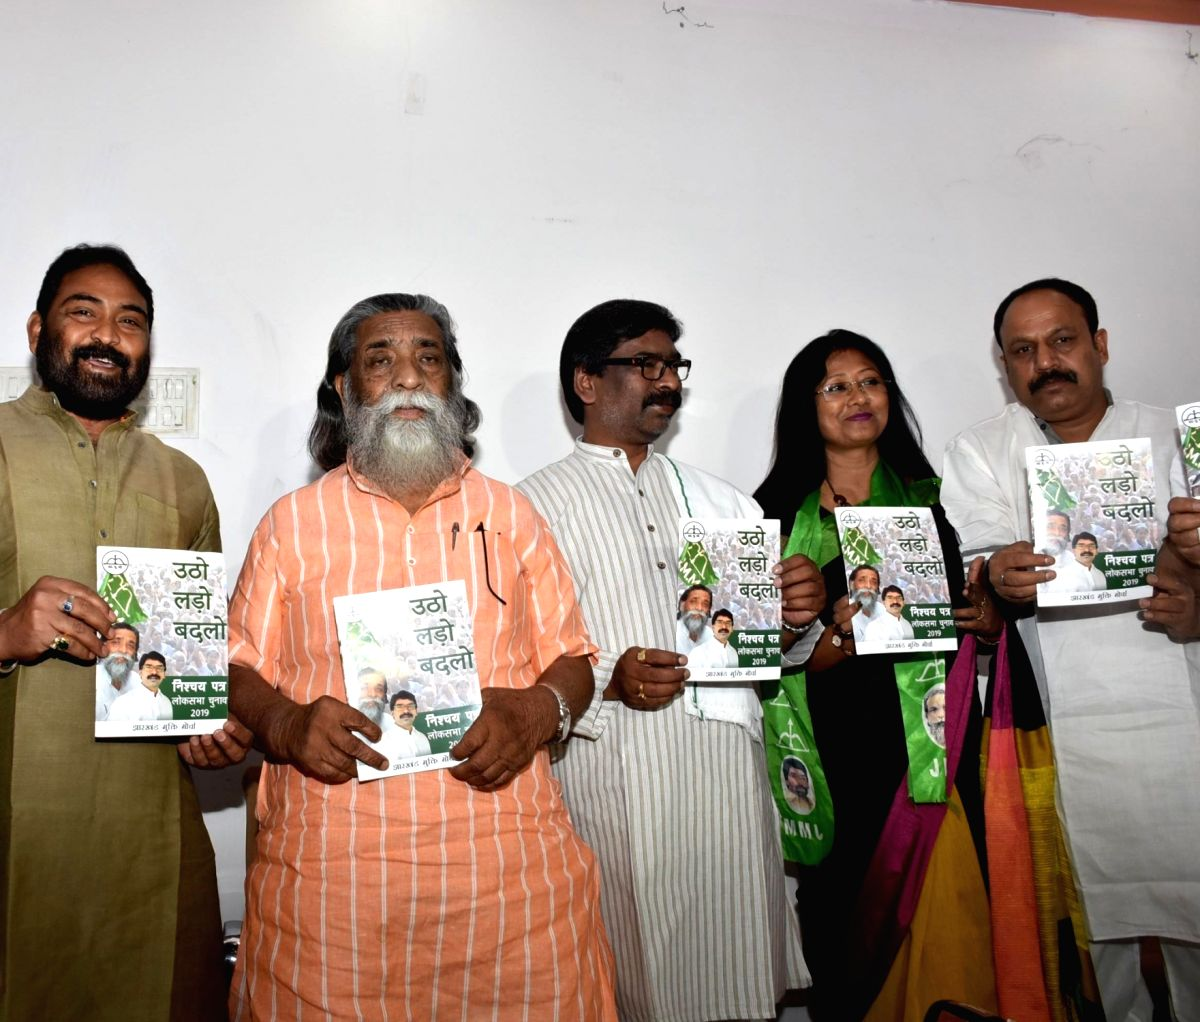 Ranchi: Jharkhand Mukti Morcha (JMM) President Shibu Soren and his son and Former Chief Minister Hemant Soren release the party's election manifesto for 2019 Lok Sabha polls, in Ranchi on April 27, 2019.